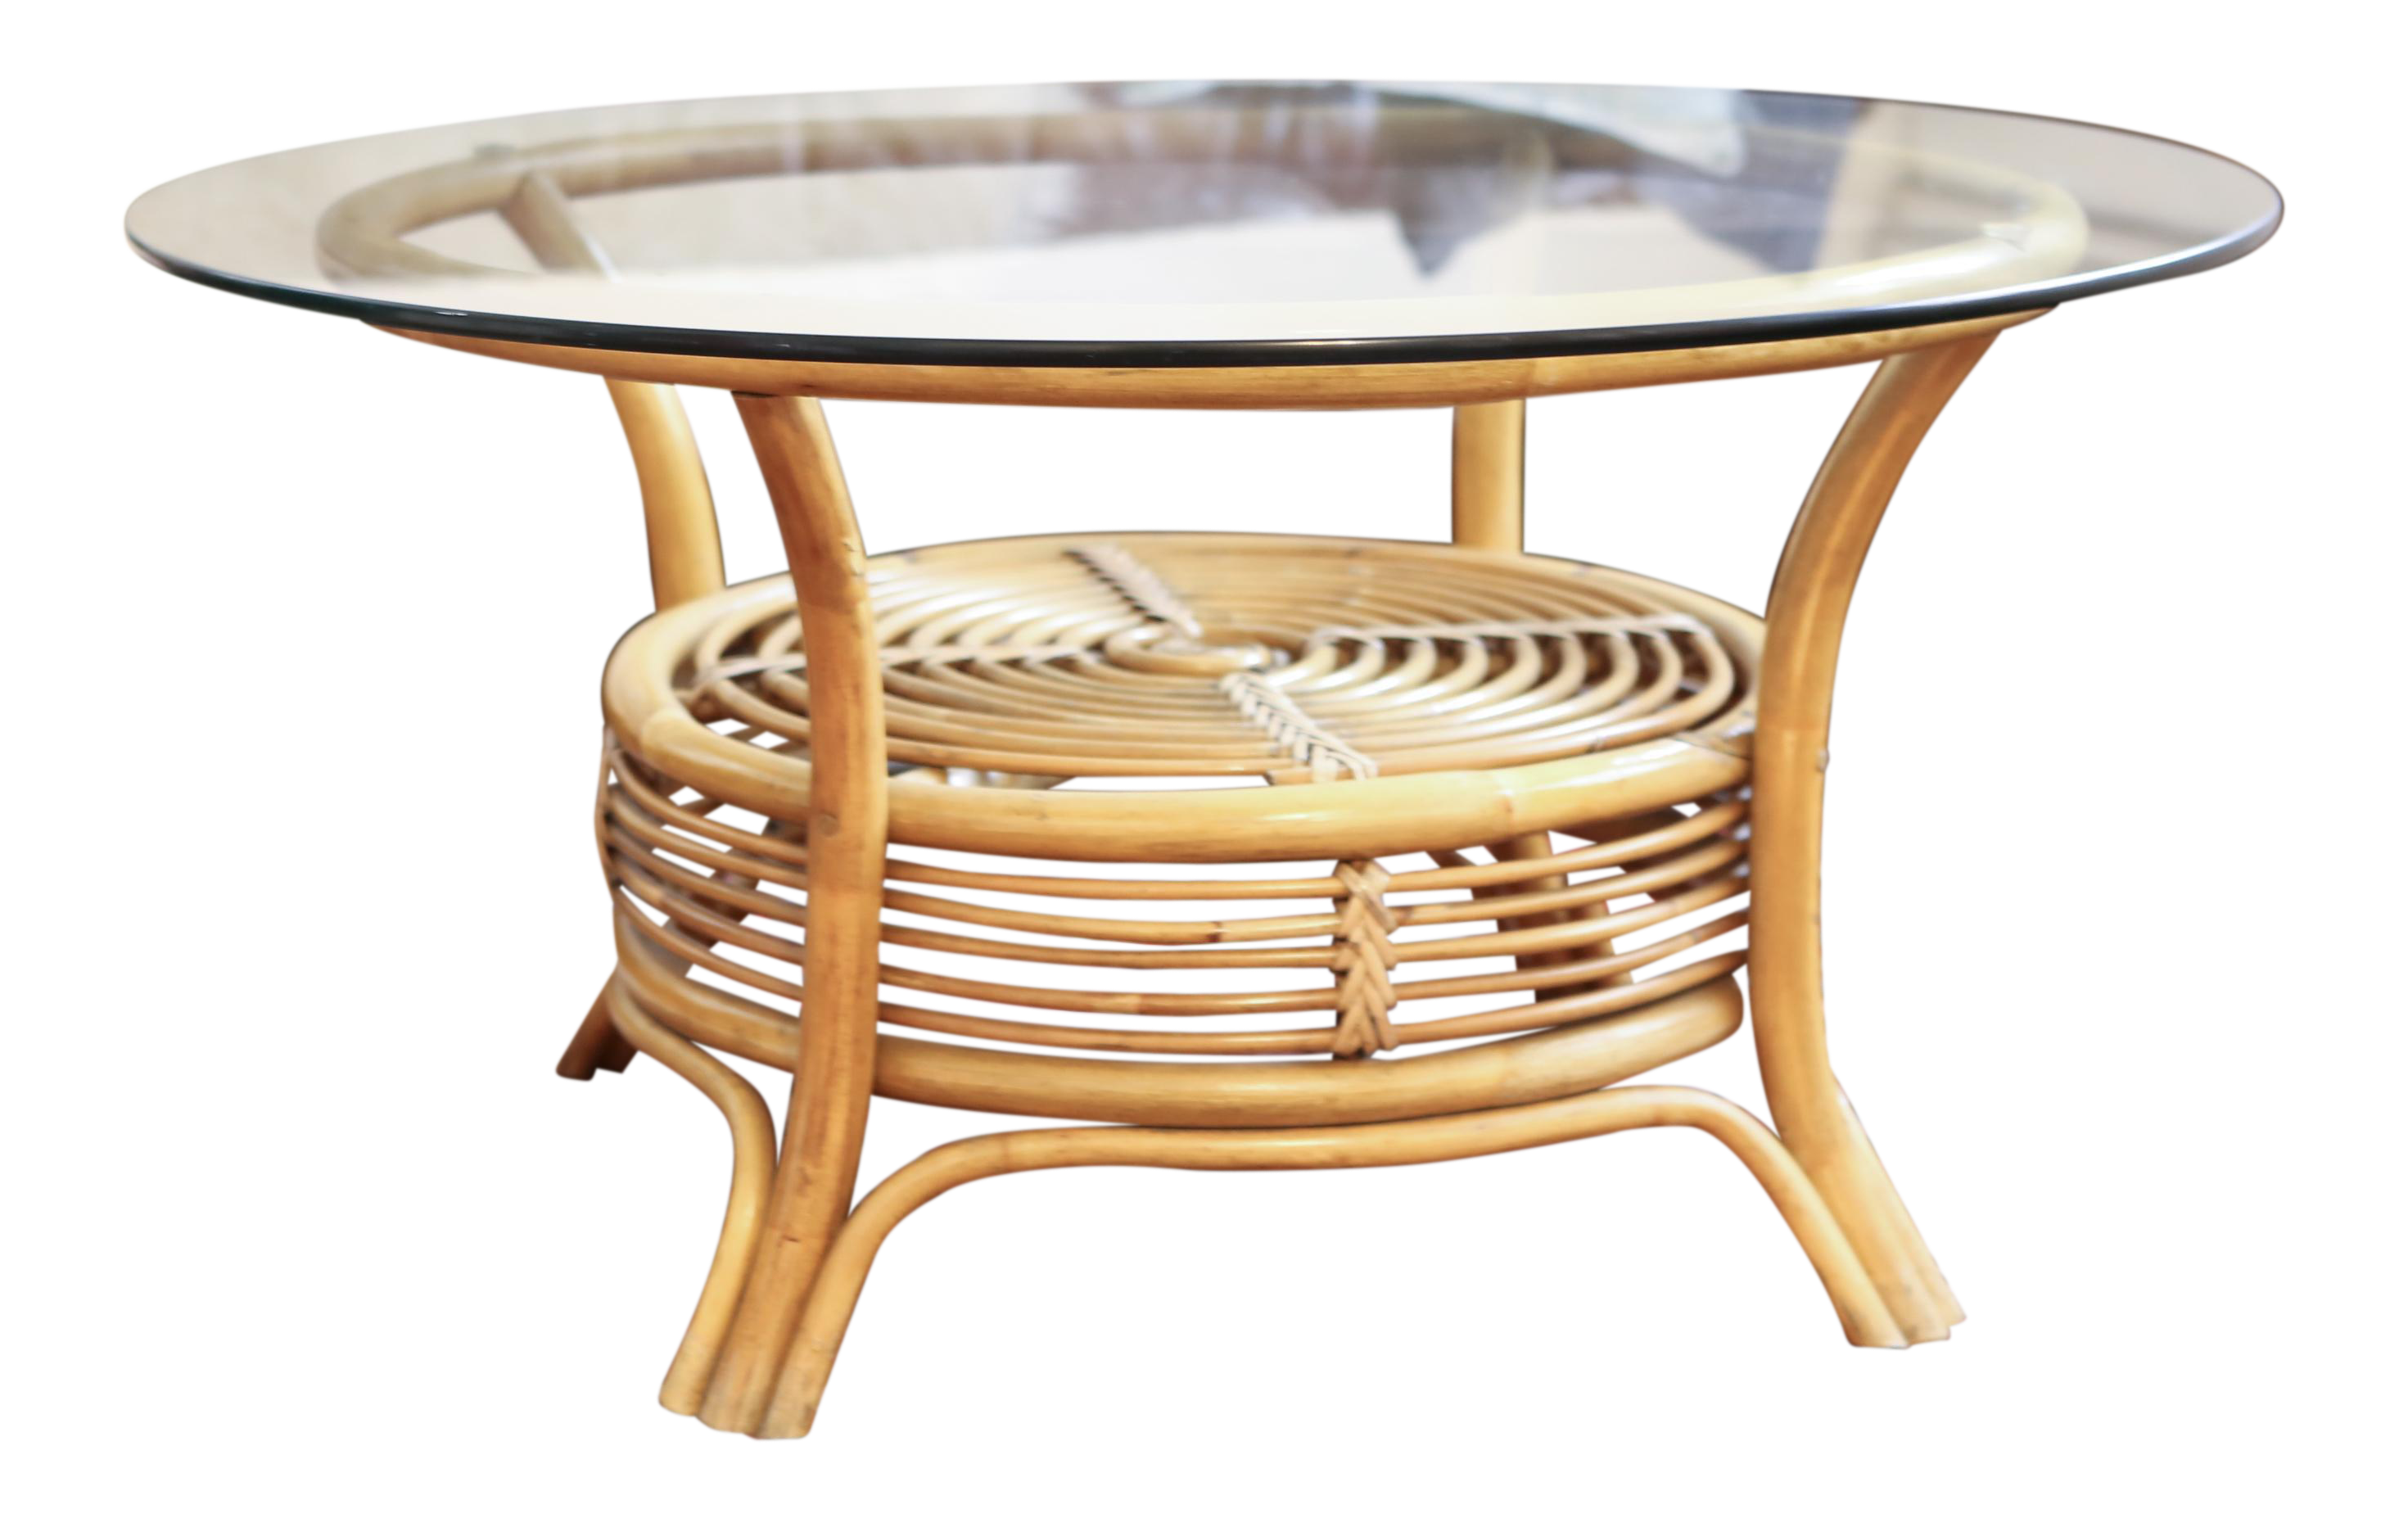 round rattan coffee table with glass top answerplane wicker end tables ashley furniture nesting off white living room toronto thomasville minneapolis universal gabriella stanley